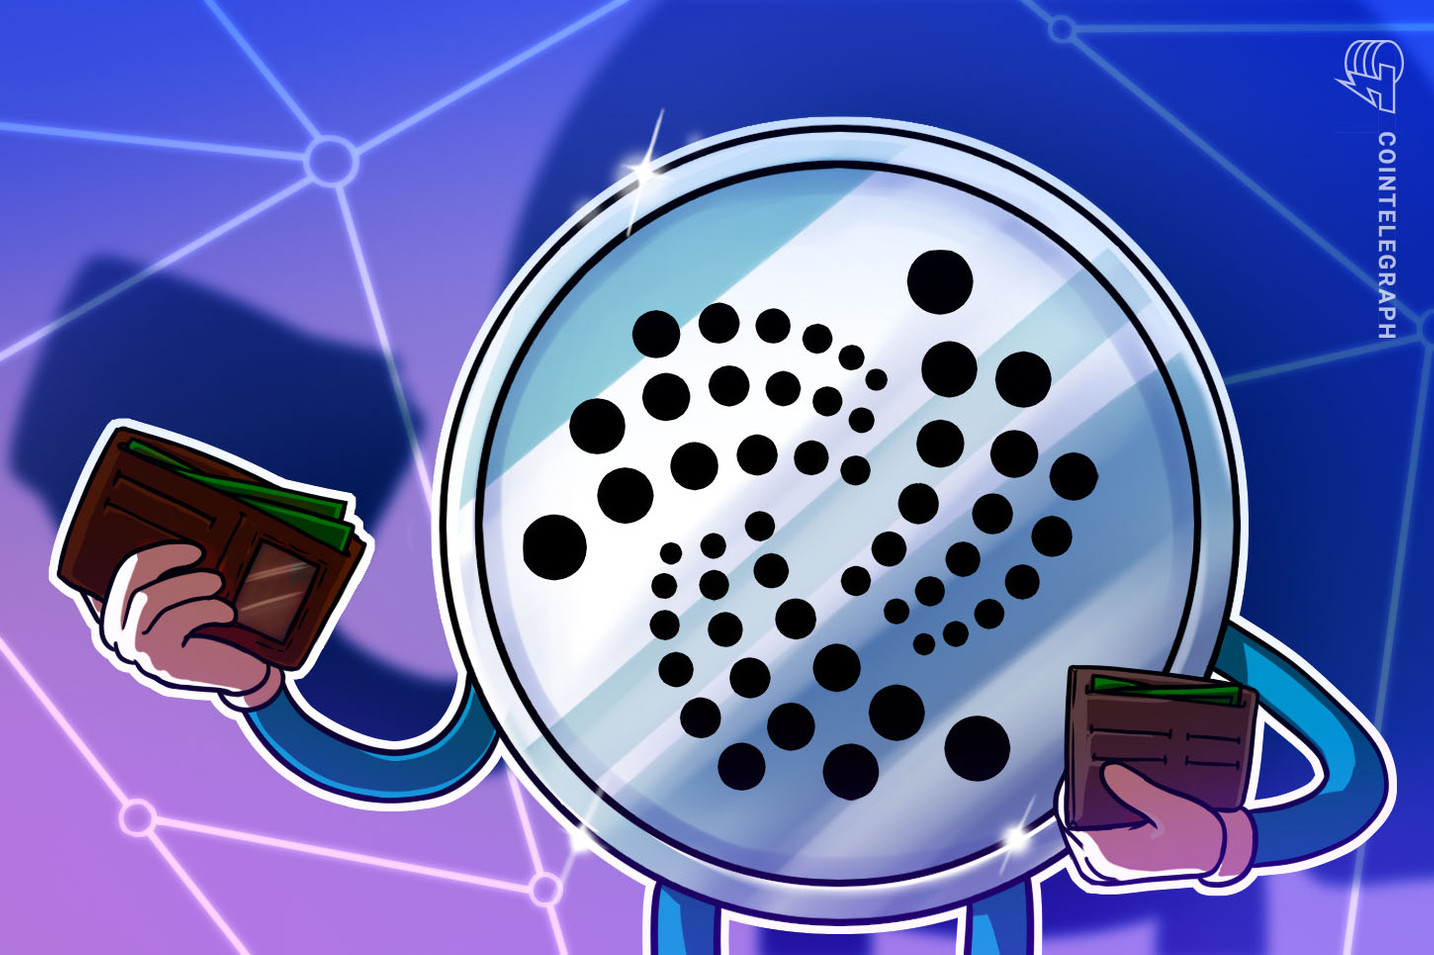 IOTA Foundation Launches Trinity, a New Software Wallet for IOTA tokens